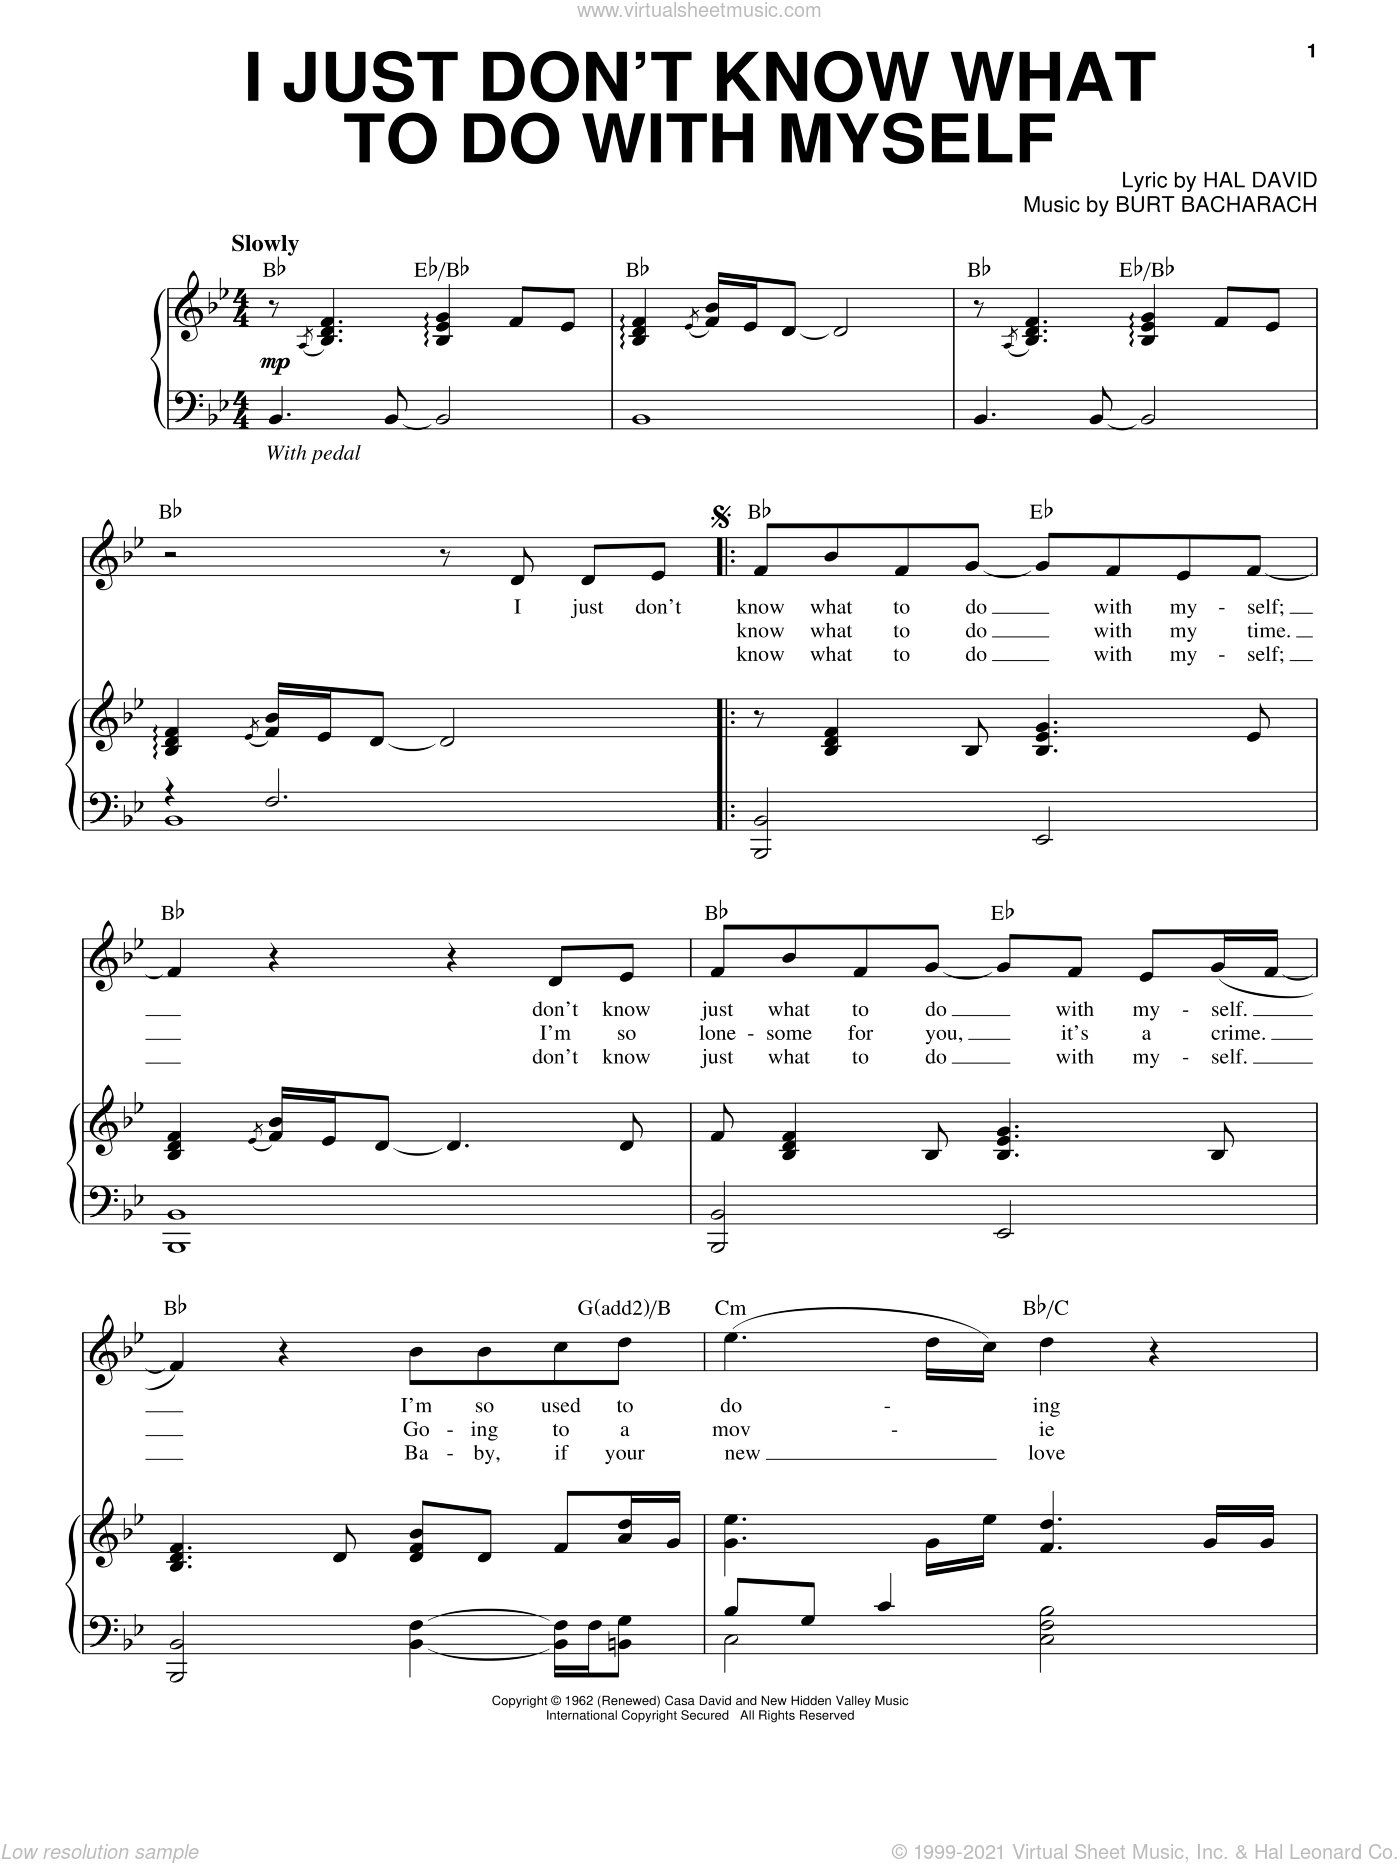 I Just Don't Know What To Do With Myself sheet music for voice and piano by Steve Tyrell, Bacharach & David, Dusty Springfield, Burt Bacharach and Hal David, intermediate skill level